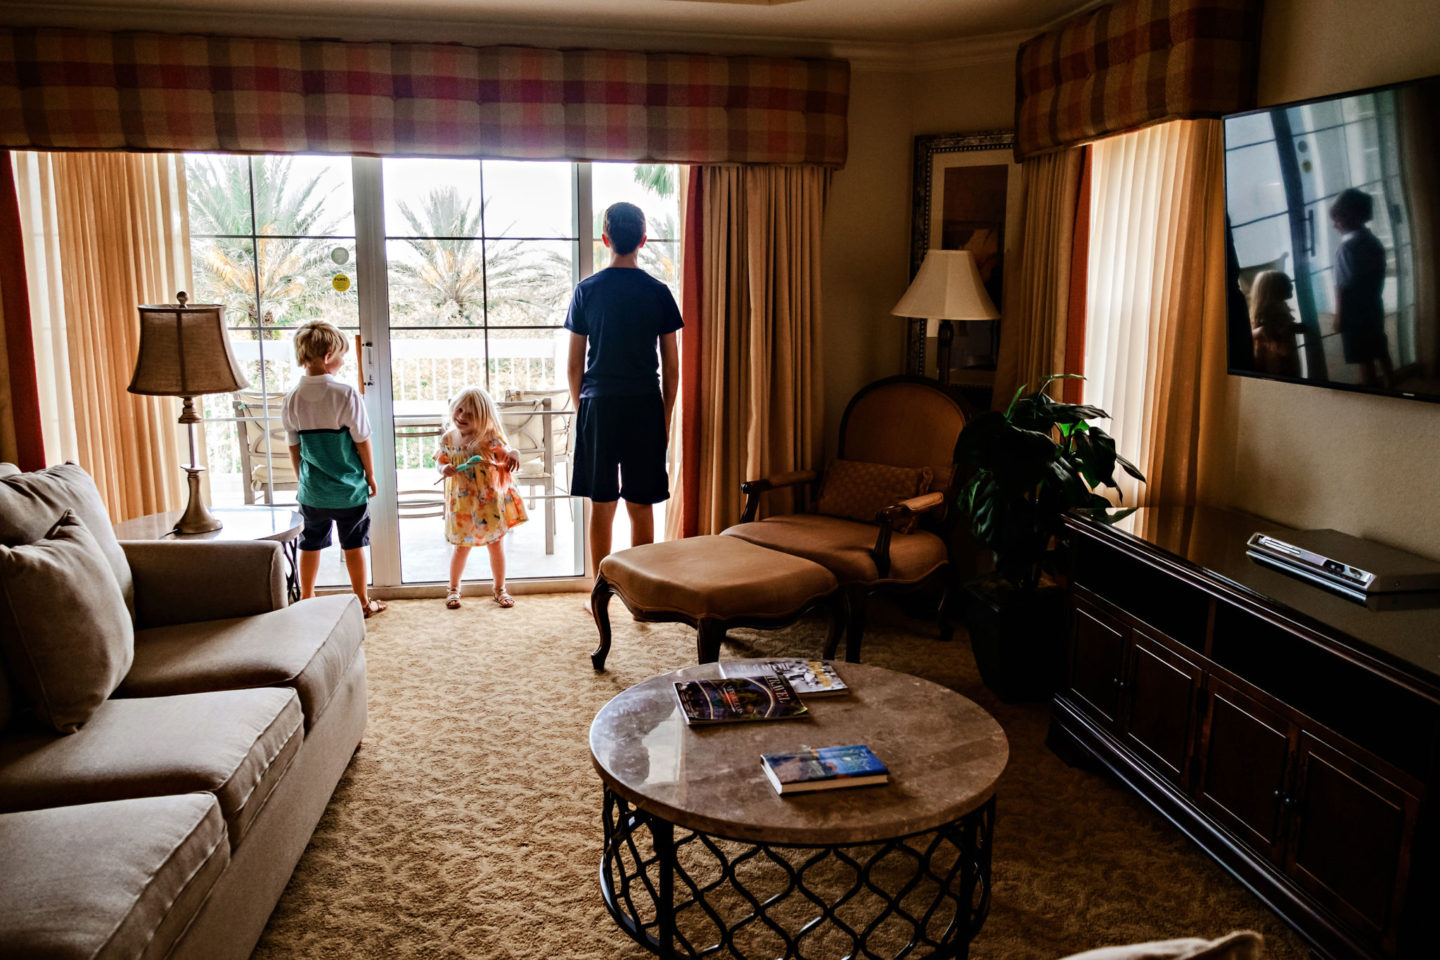 Reunion Resort by popular Atlanta travel blog, Chelissima: image of Chelsea Patricia's children looking out the window of their Reunion Resort room.